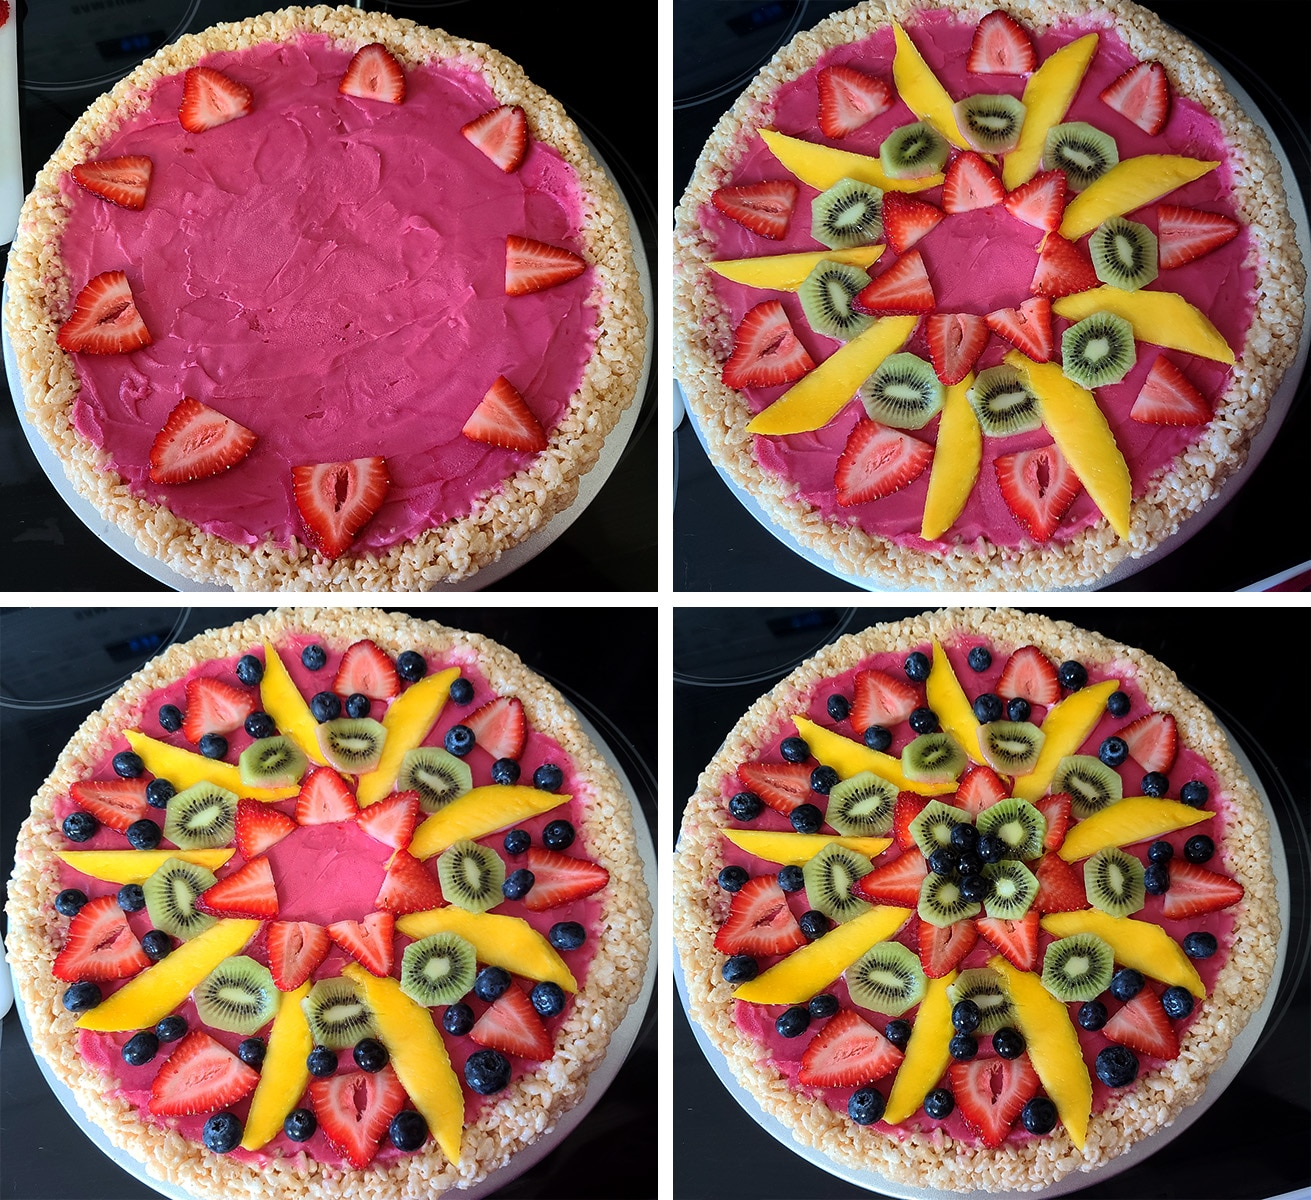 A four part compilation image showing the progression from plain sorbet/crust, through the addition of several types of fruit, into the fully decorated dessert pizza.